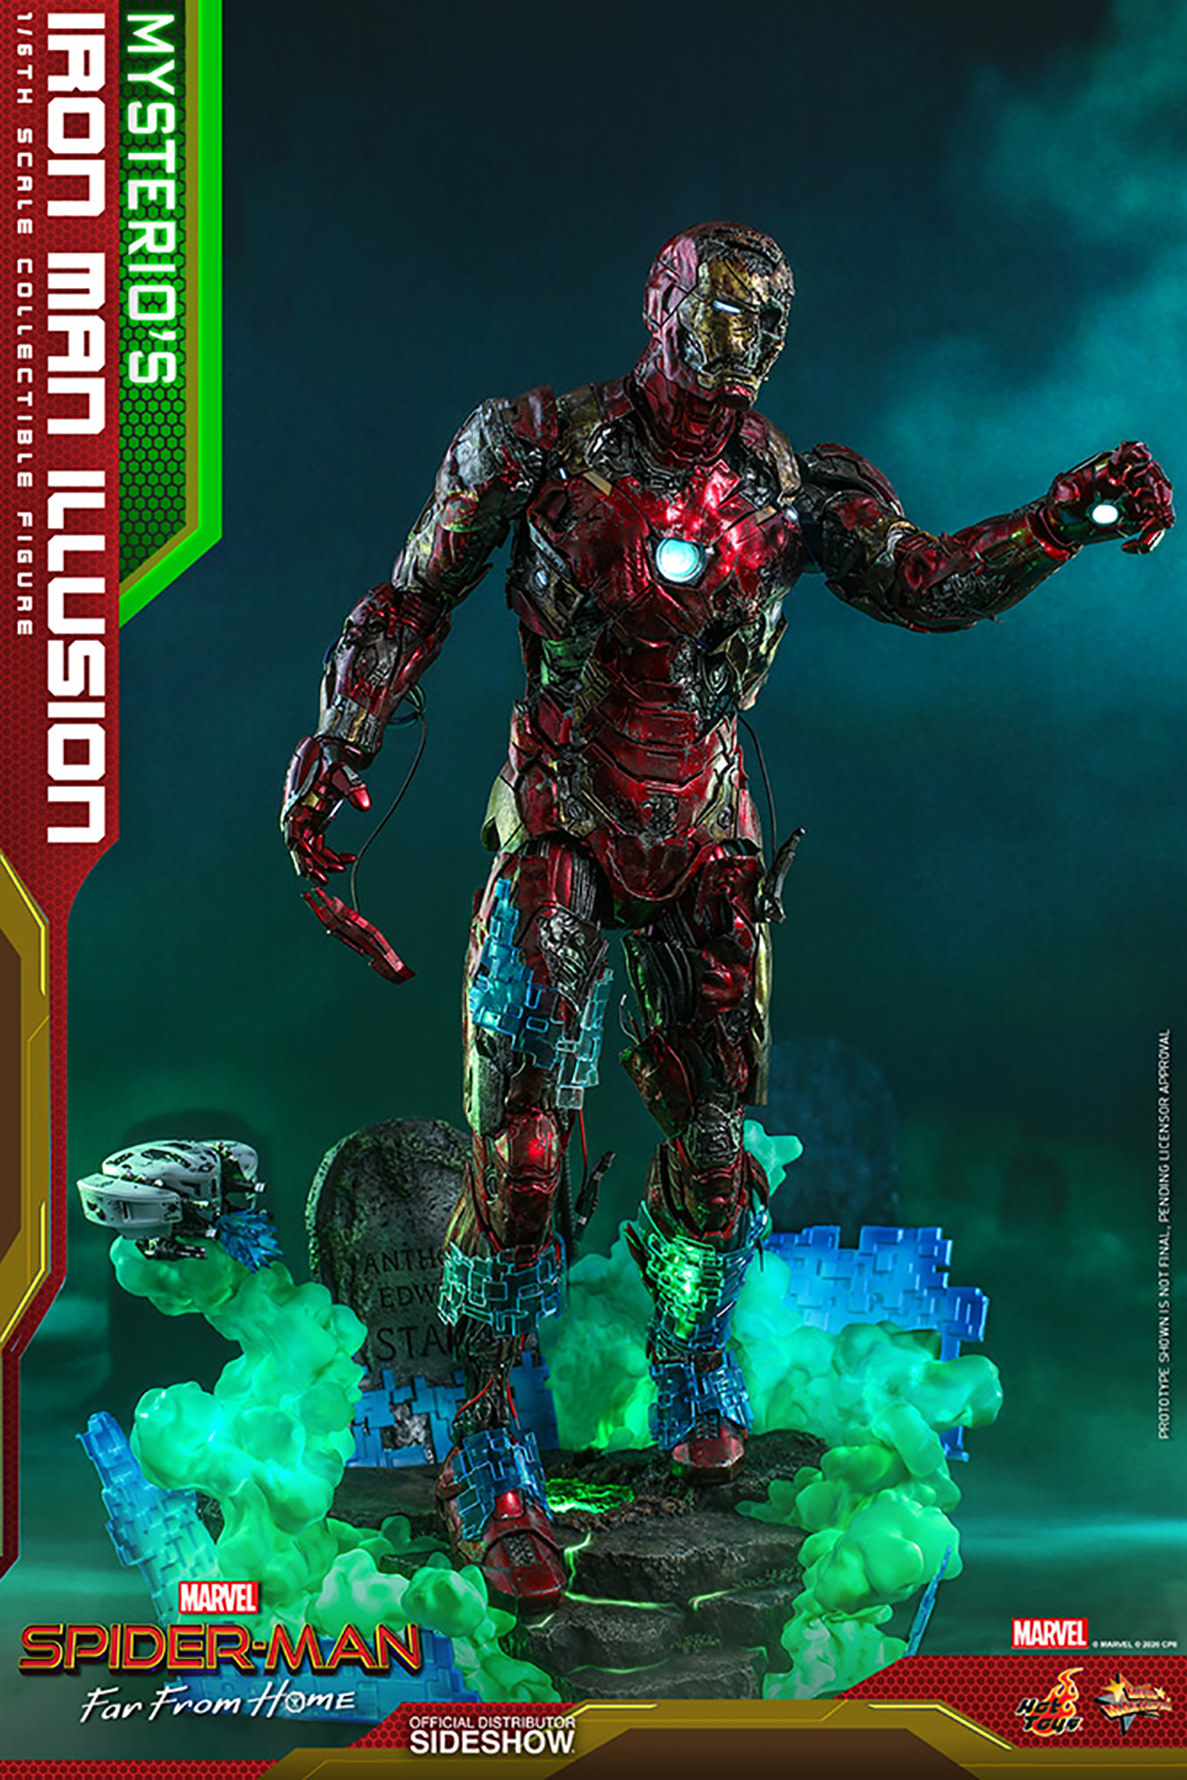 Hot toys Marvel: Spider-Man Far from Home - Mysterio's Iron Man Illusion 1:6 Scale Figure